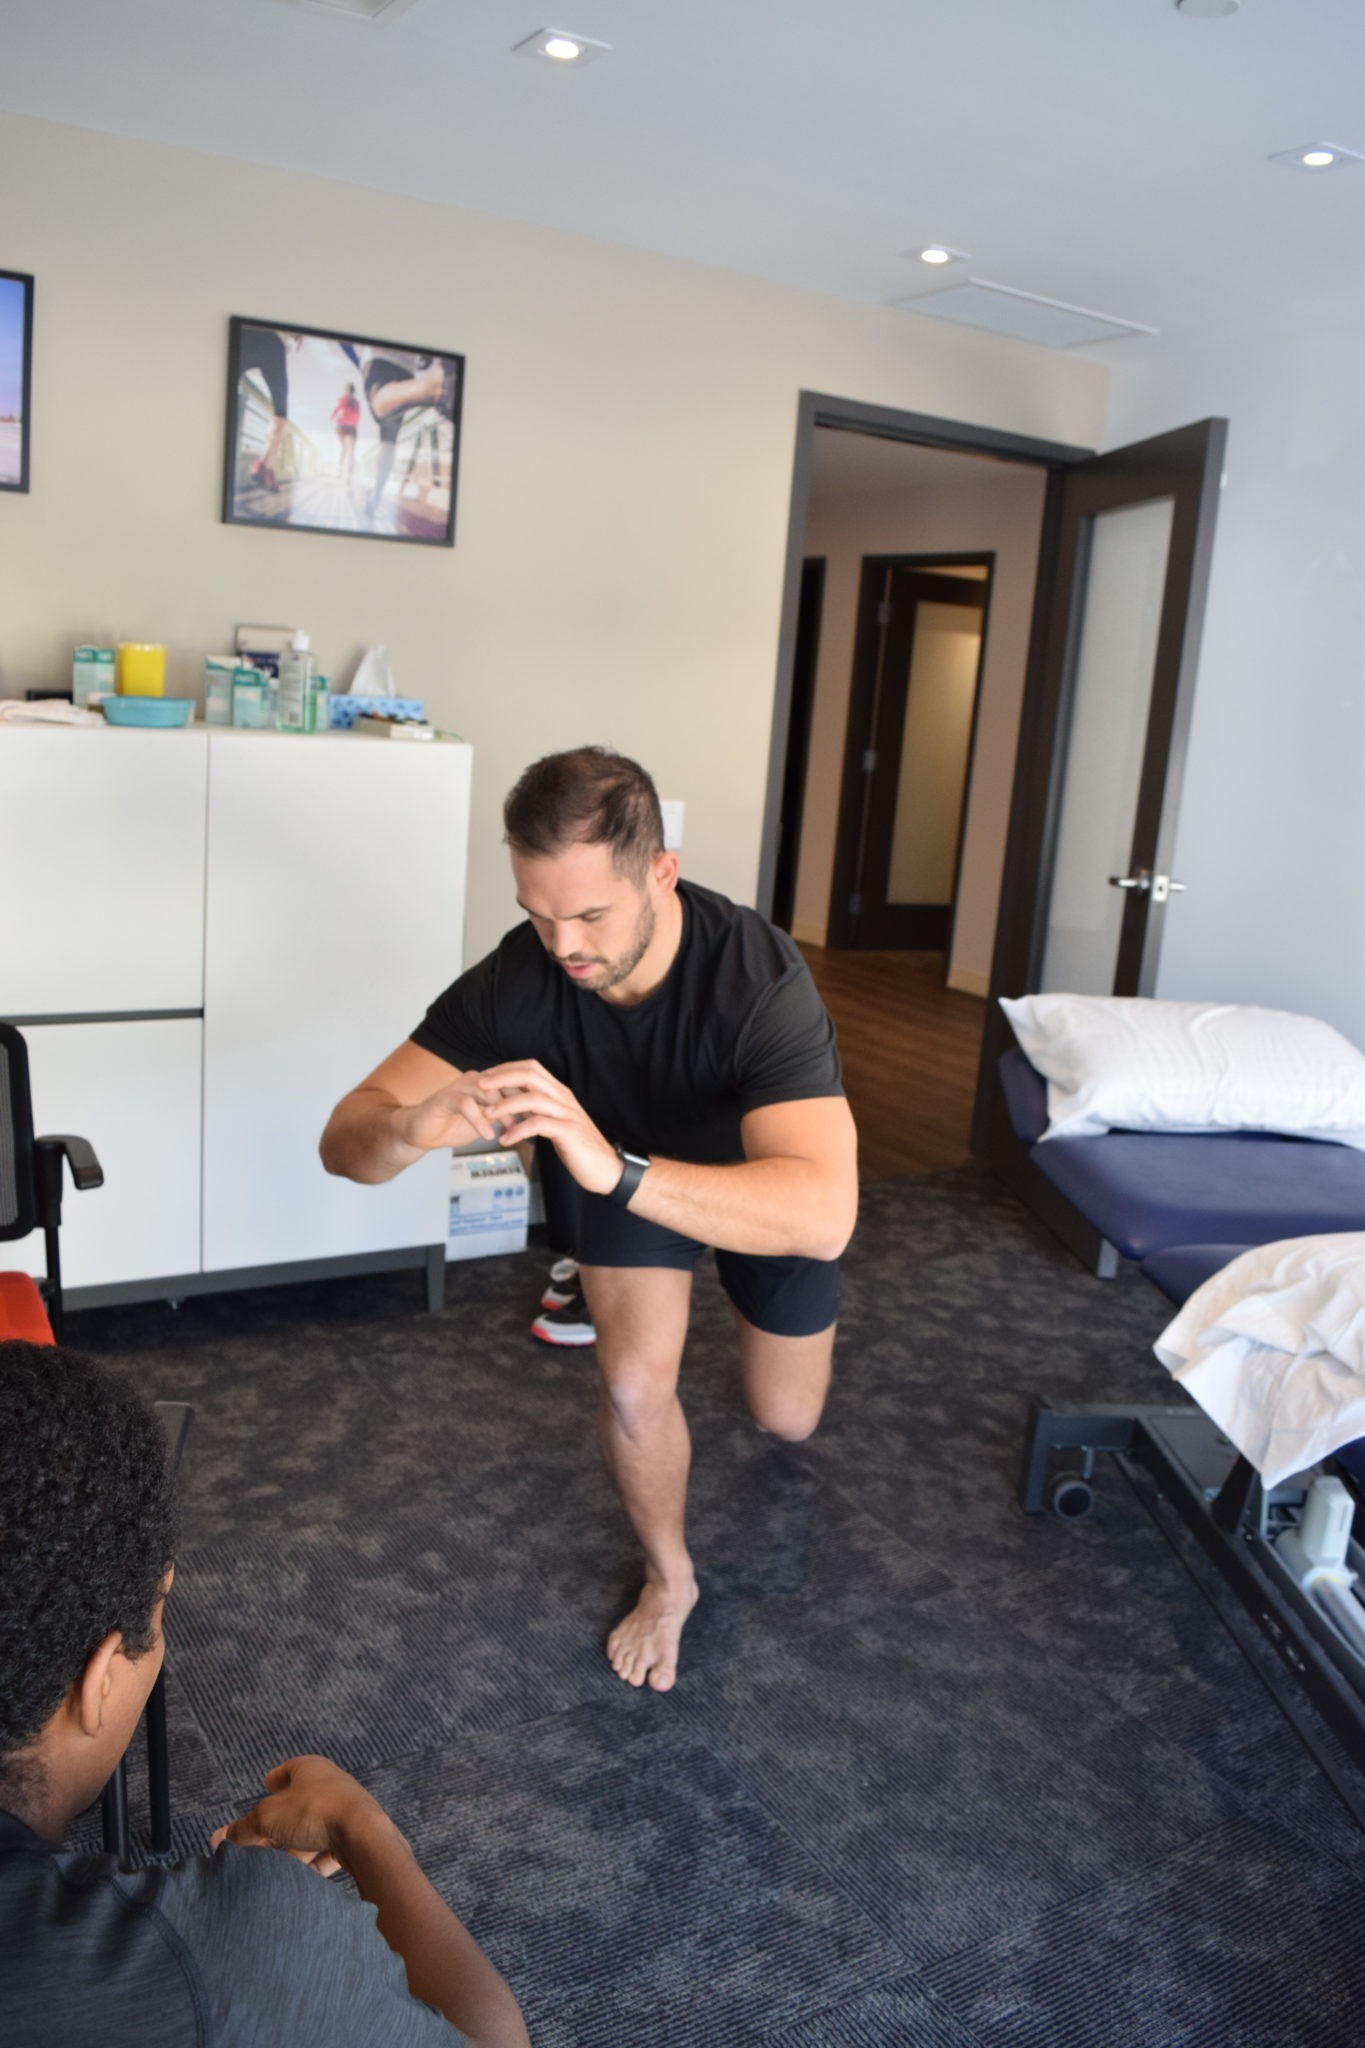 Man performing a single leg squat while a physiotherapist watches|Dan Pringle